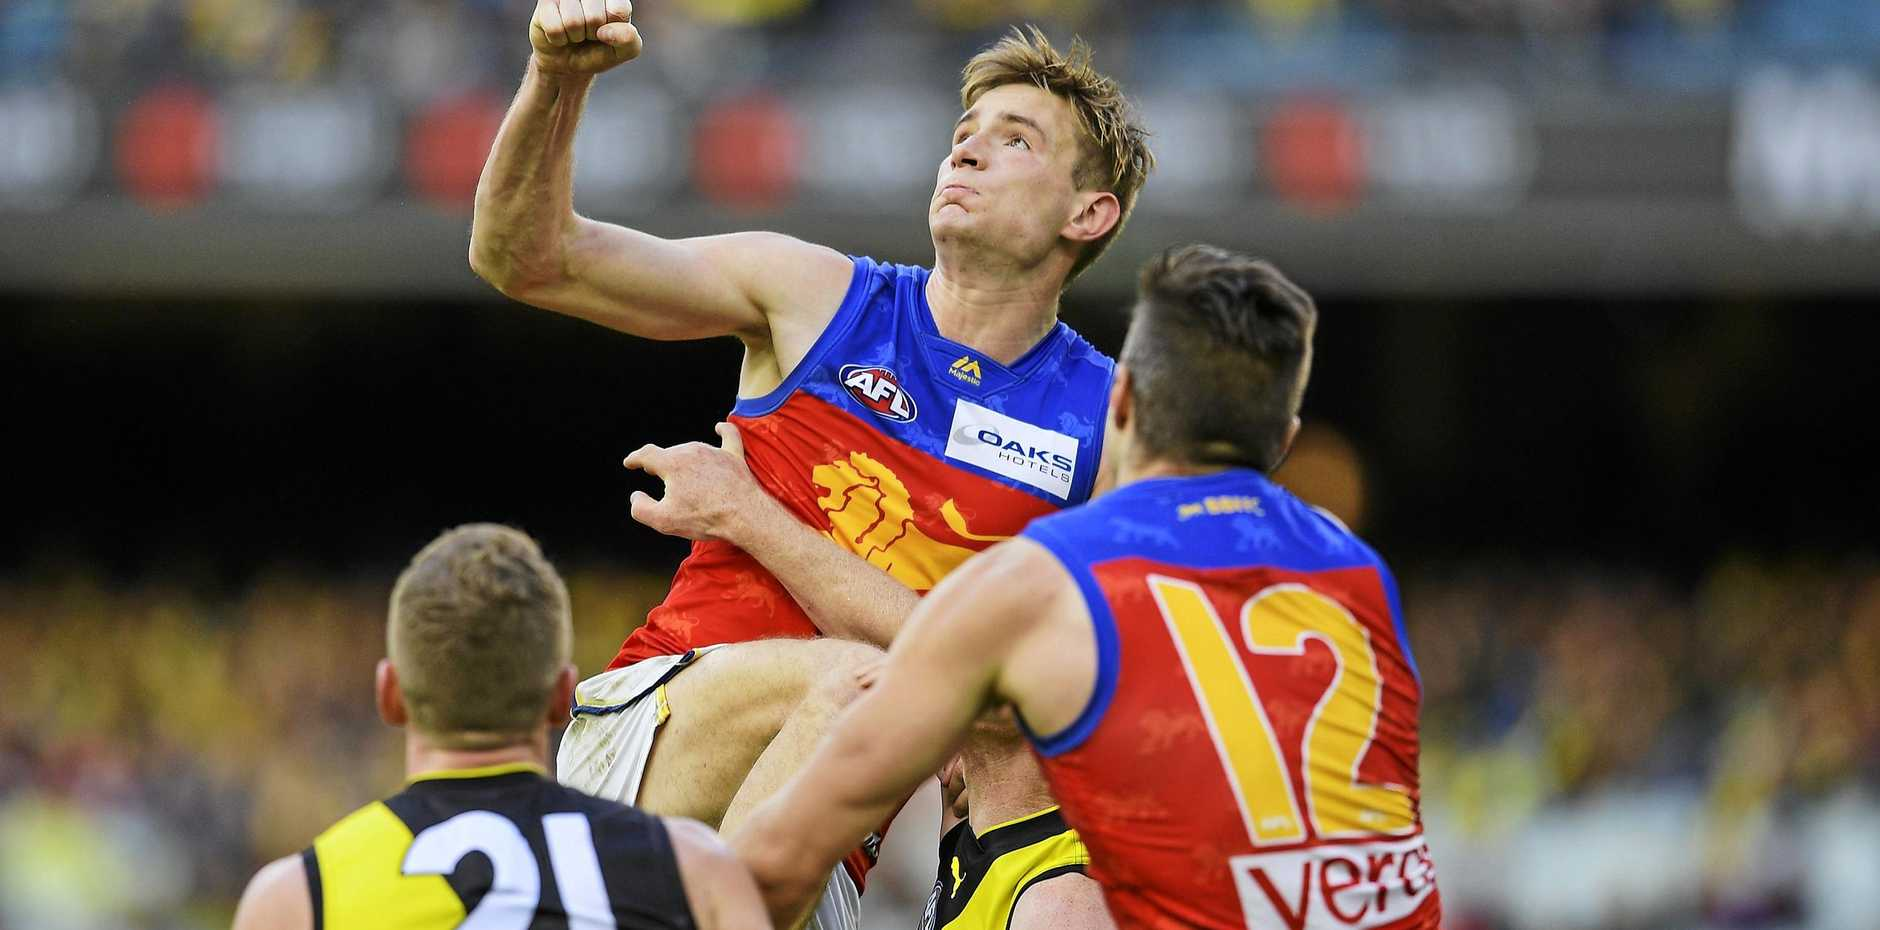 PACKING A PUNCH: Harris Andrews is enjoying a career-best season for the Lions.